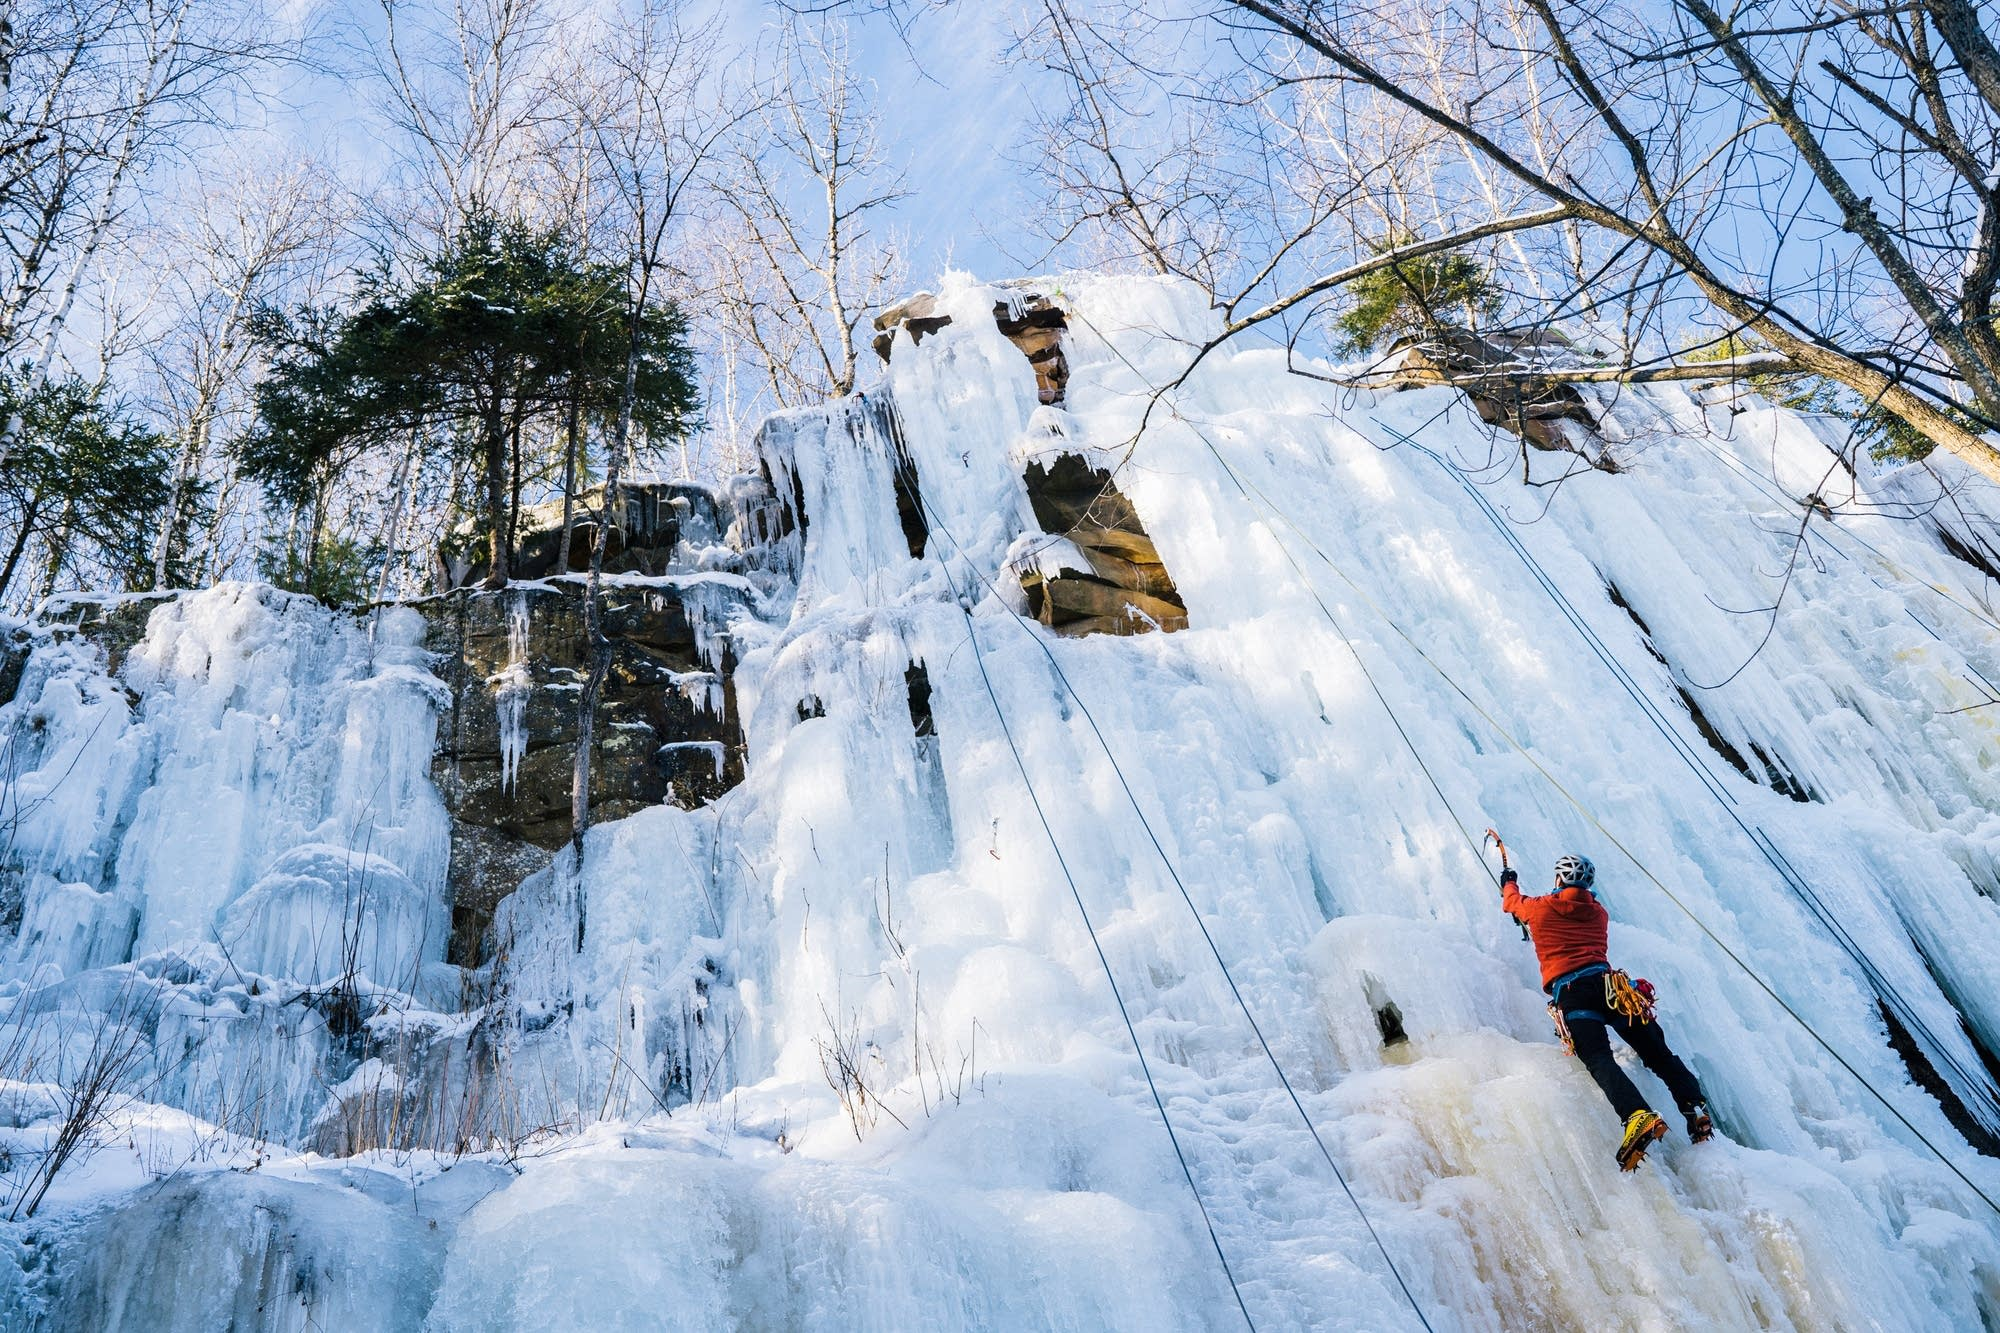 A climber uses crampons and ice picks to scale a wall of ice.